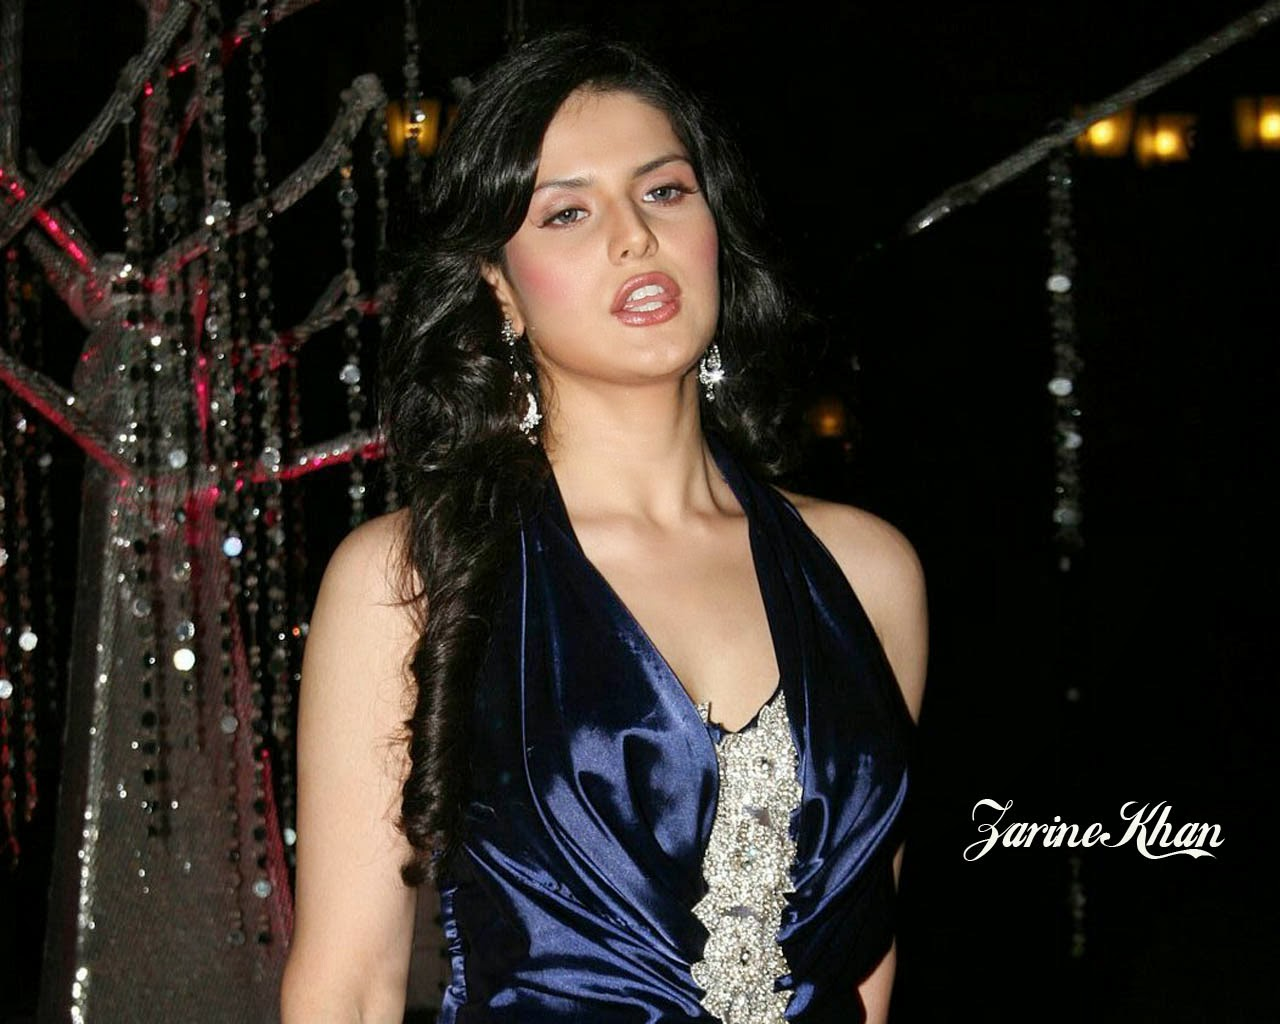 Zarine Khan Latest Hot Pics Gallery [HD Photos] HD Wallpapers Free Download